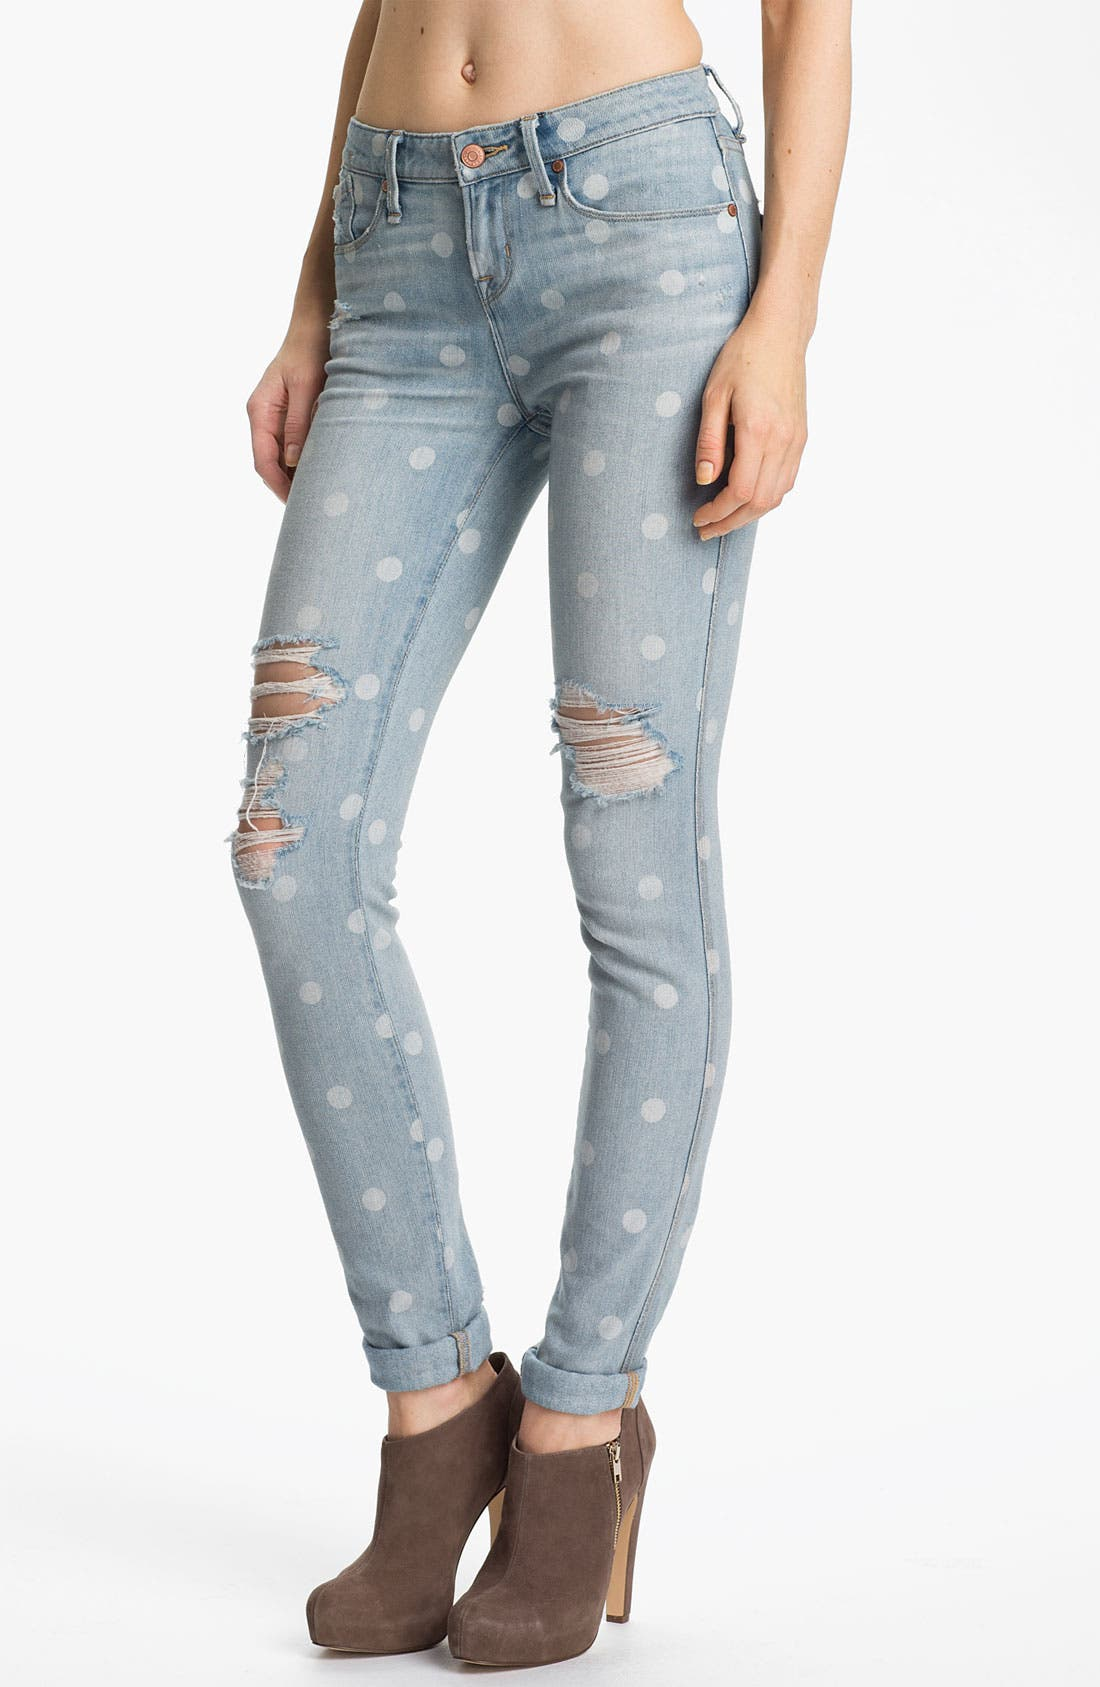 Alternate Image 1 Selected - MARC BY MARC JACOBS Distressed Print Skinny Jeans (Lily Dot)